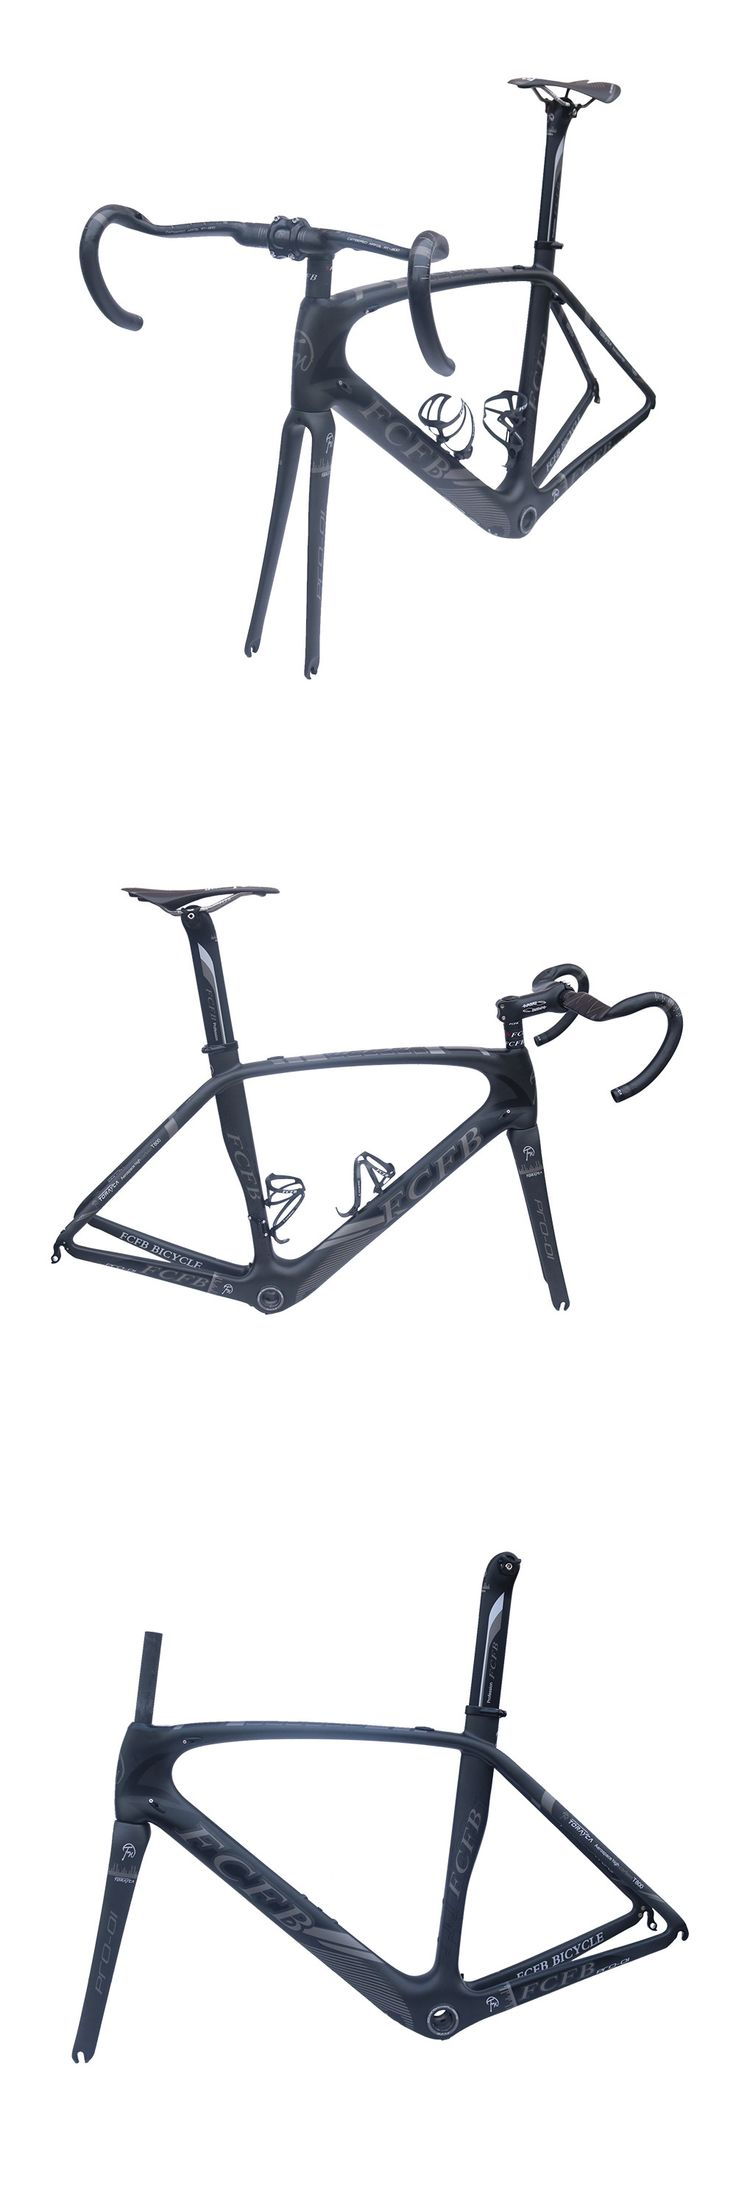 2017 FCFB carbon road bike Pro01 road carbon frame 49/52/54/56cm matt BSA bicicleta road bike frame with carbon handlebar